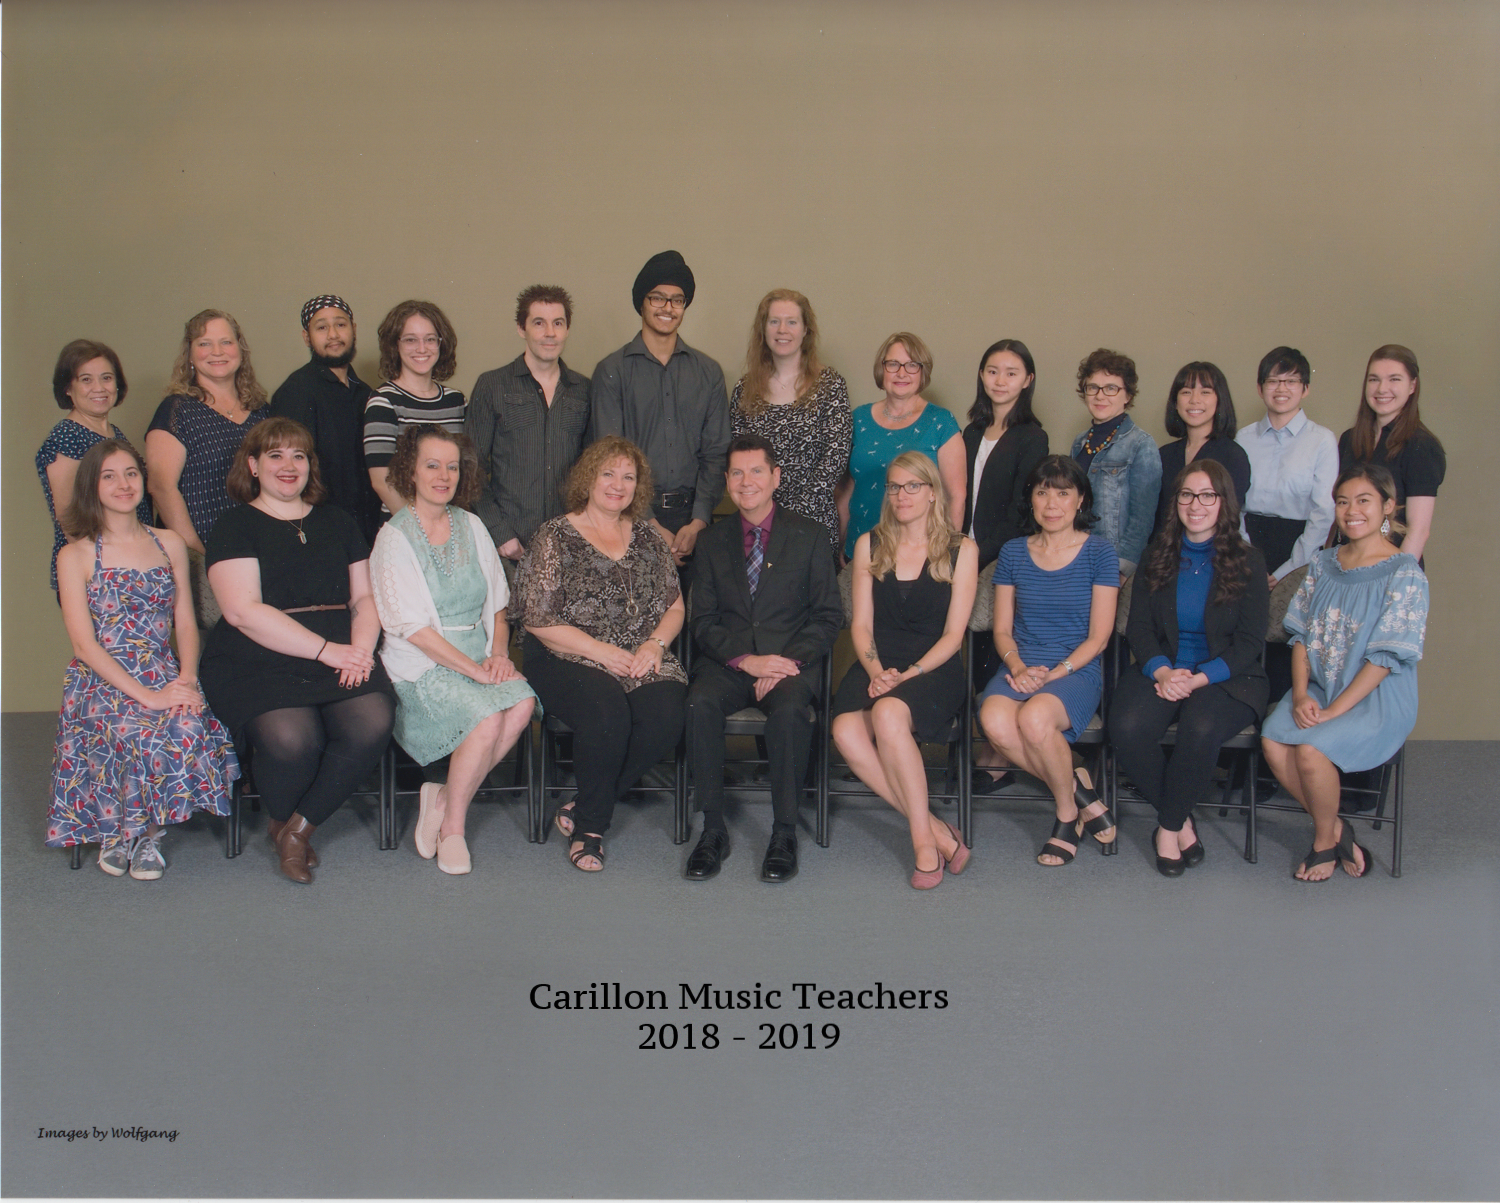 Carillon Music Teachers